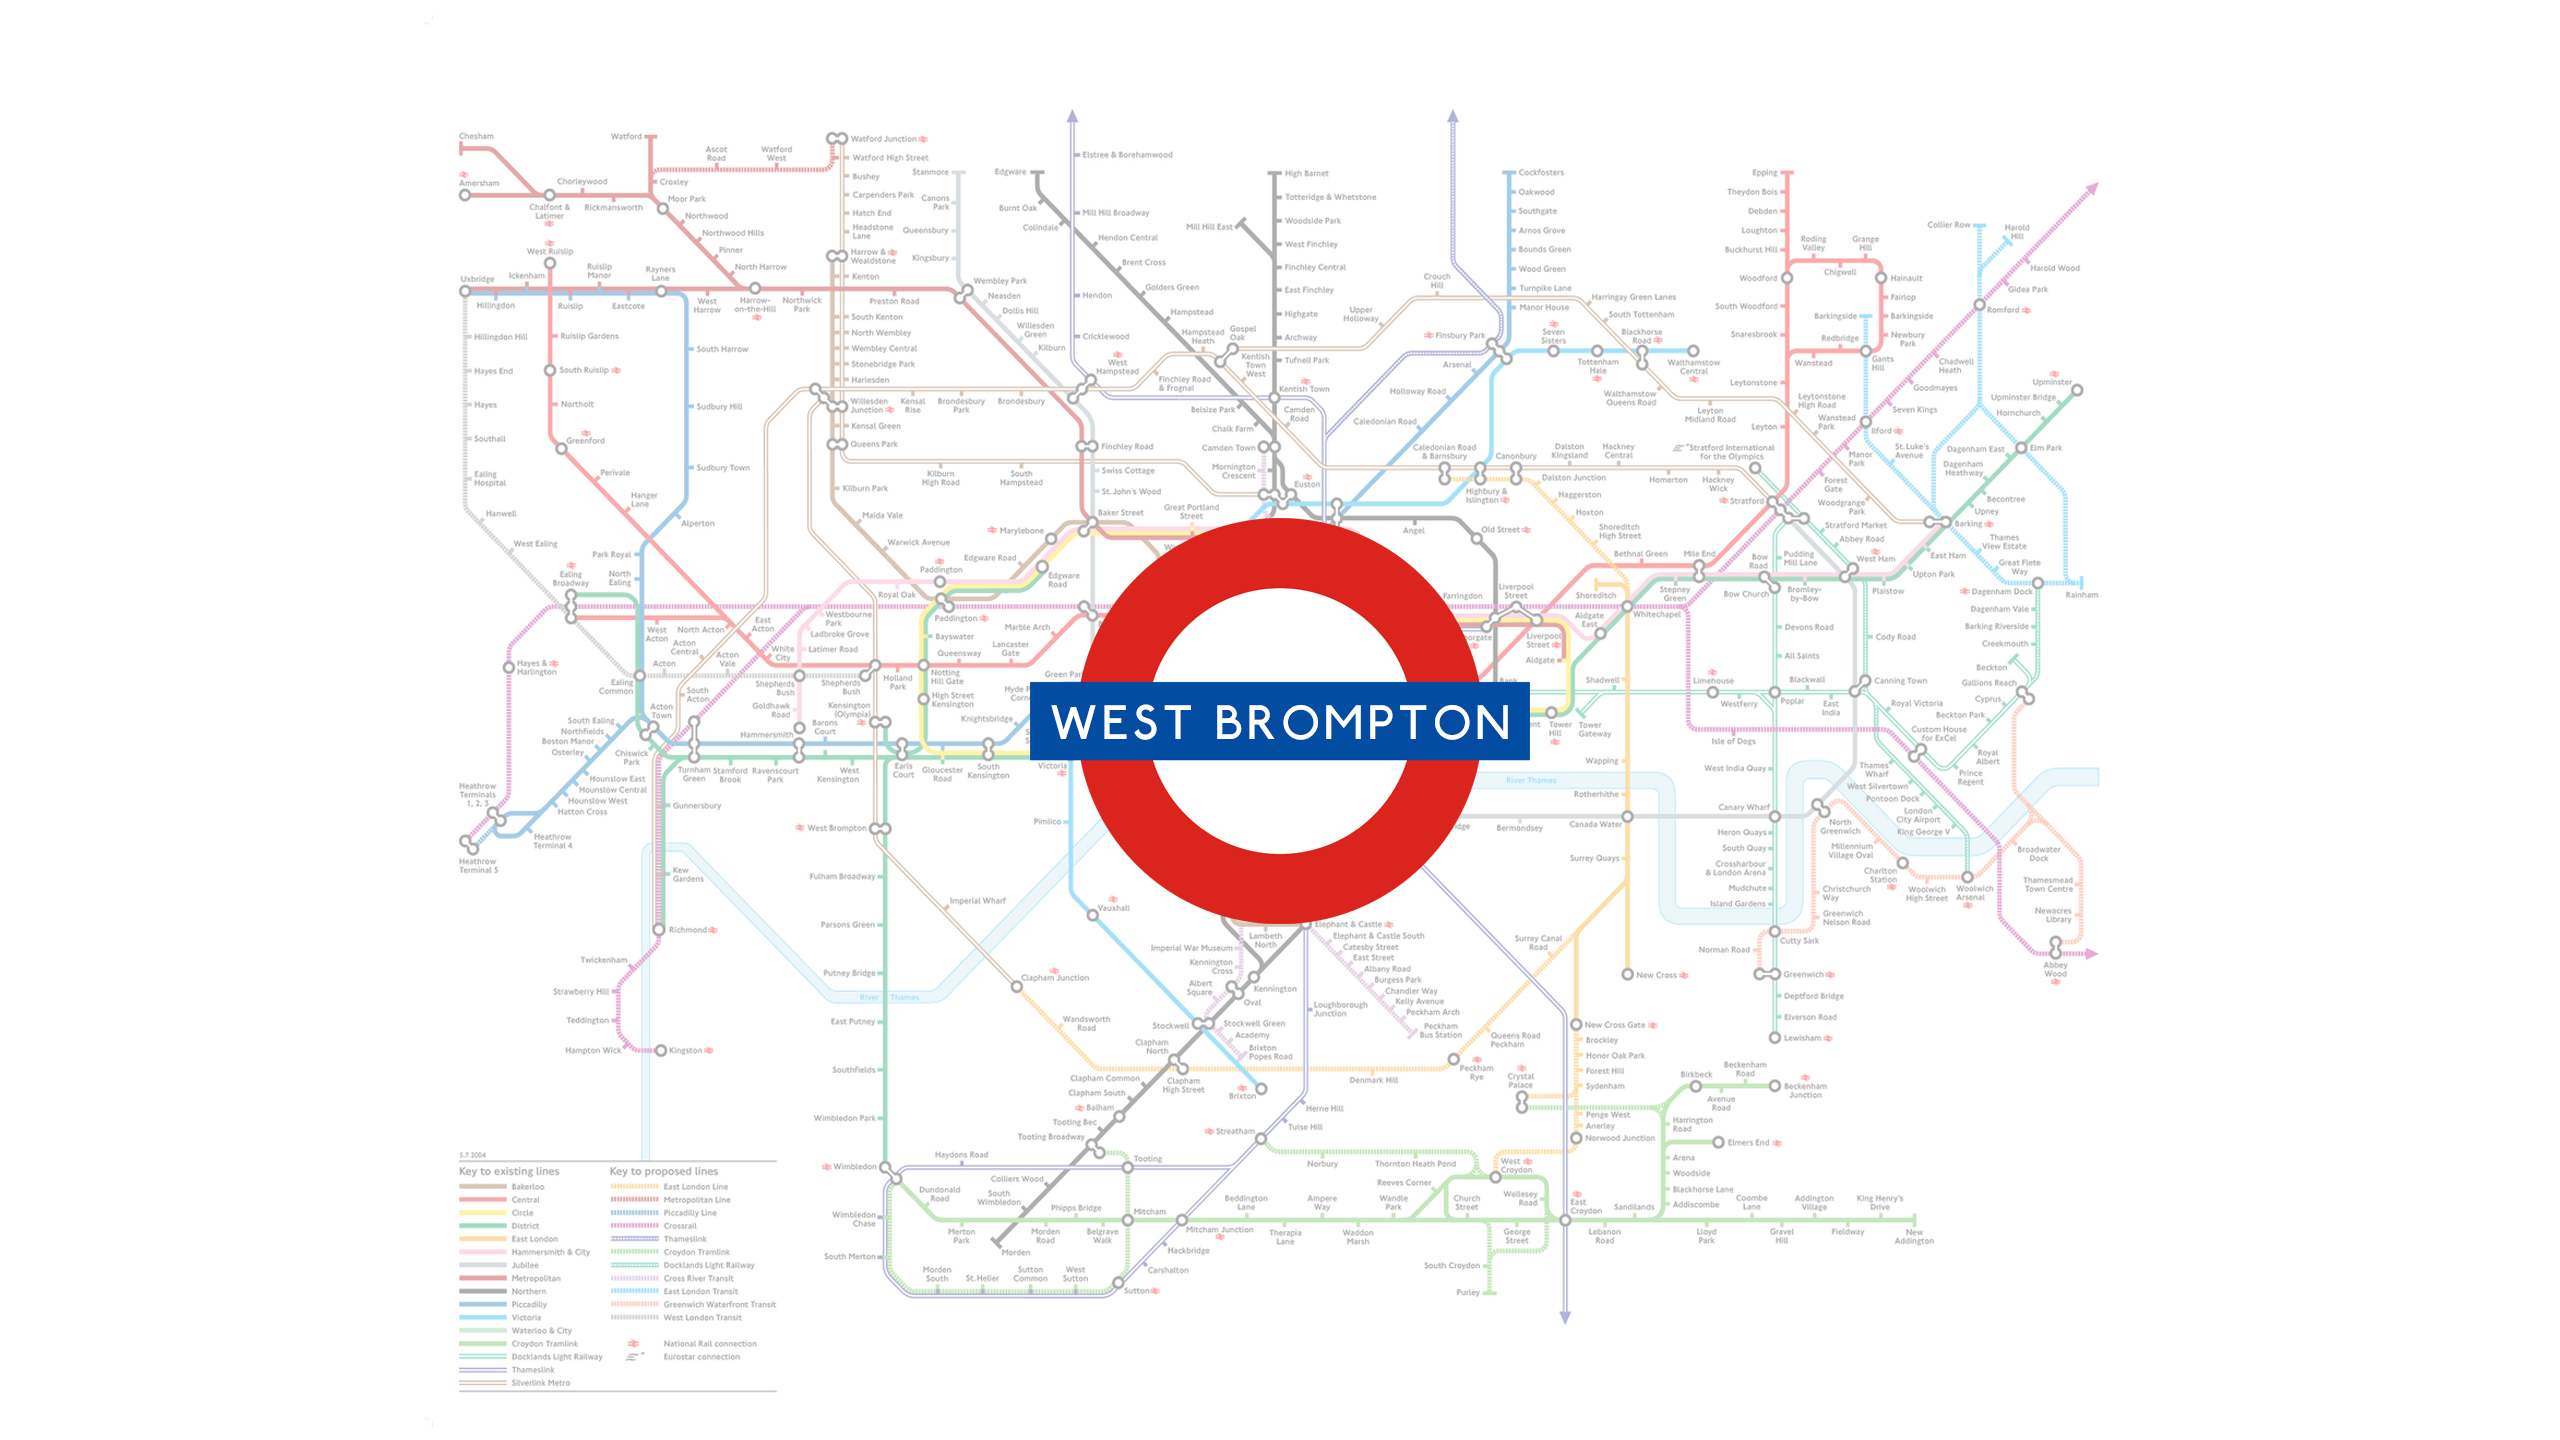 West Brompton (Map)